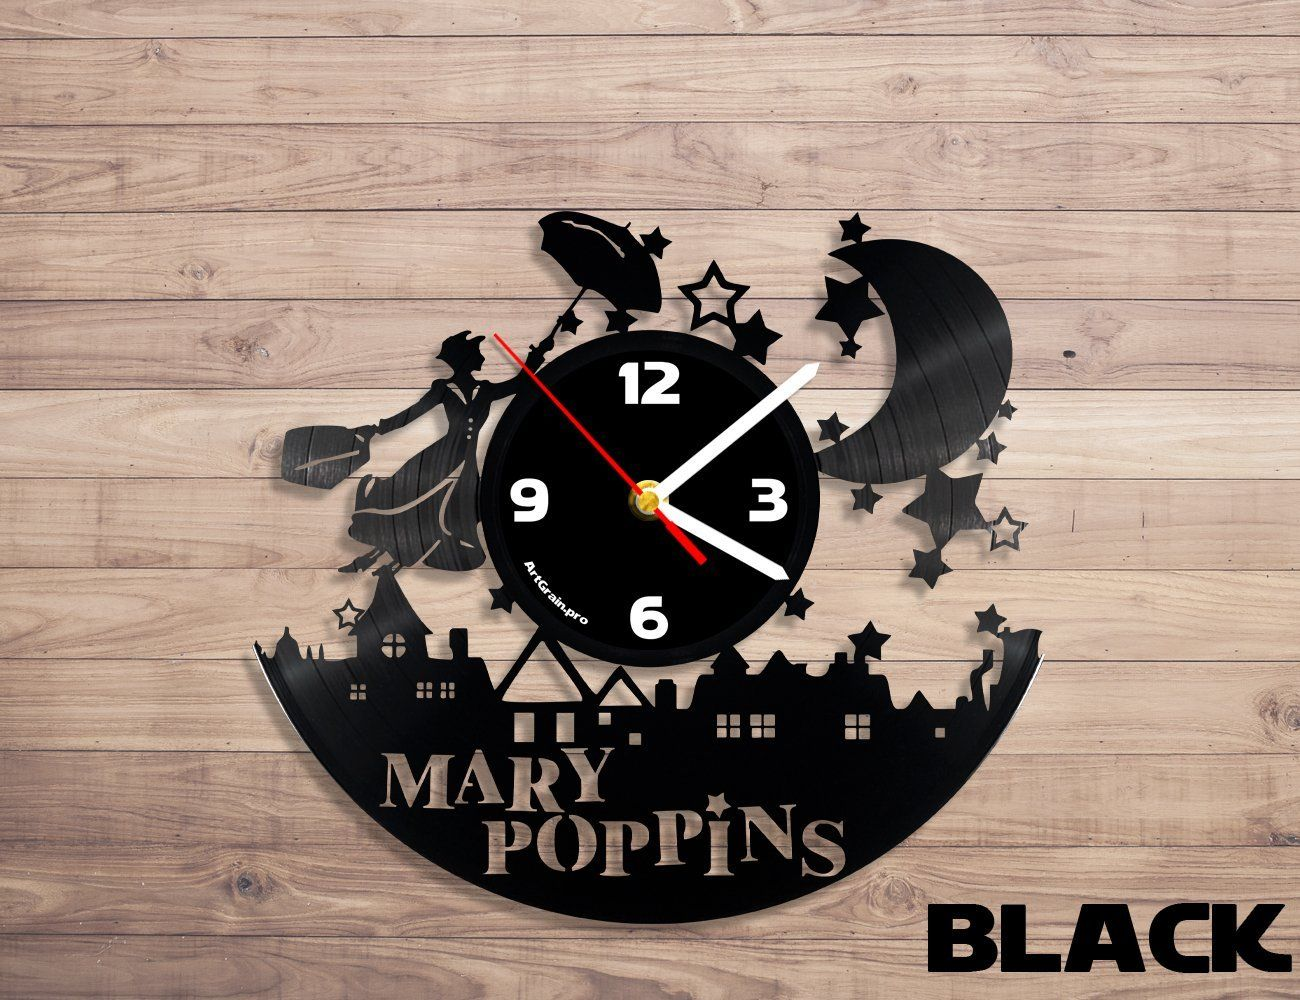 Amazon.com: Merry Poppins vinyl record wall clock: Home & Kitchen